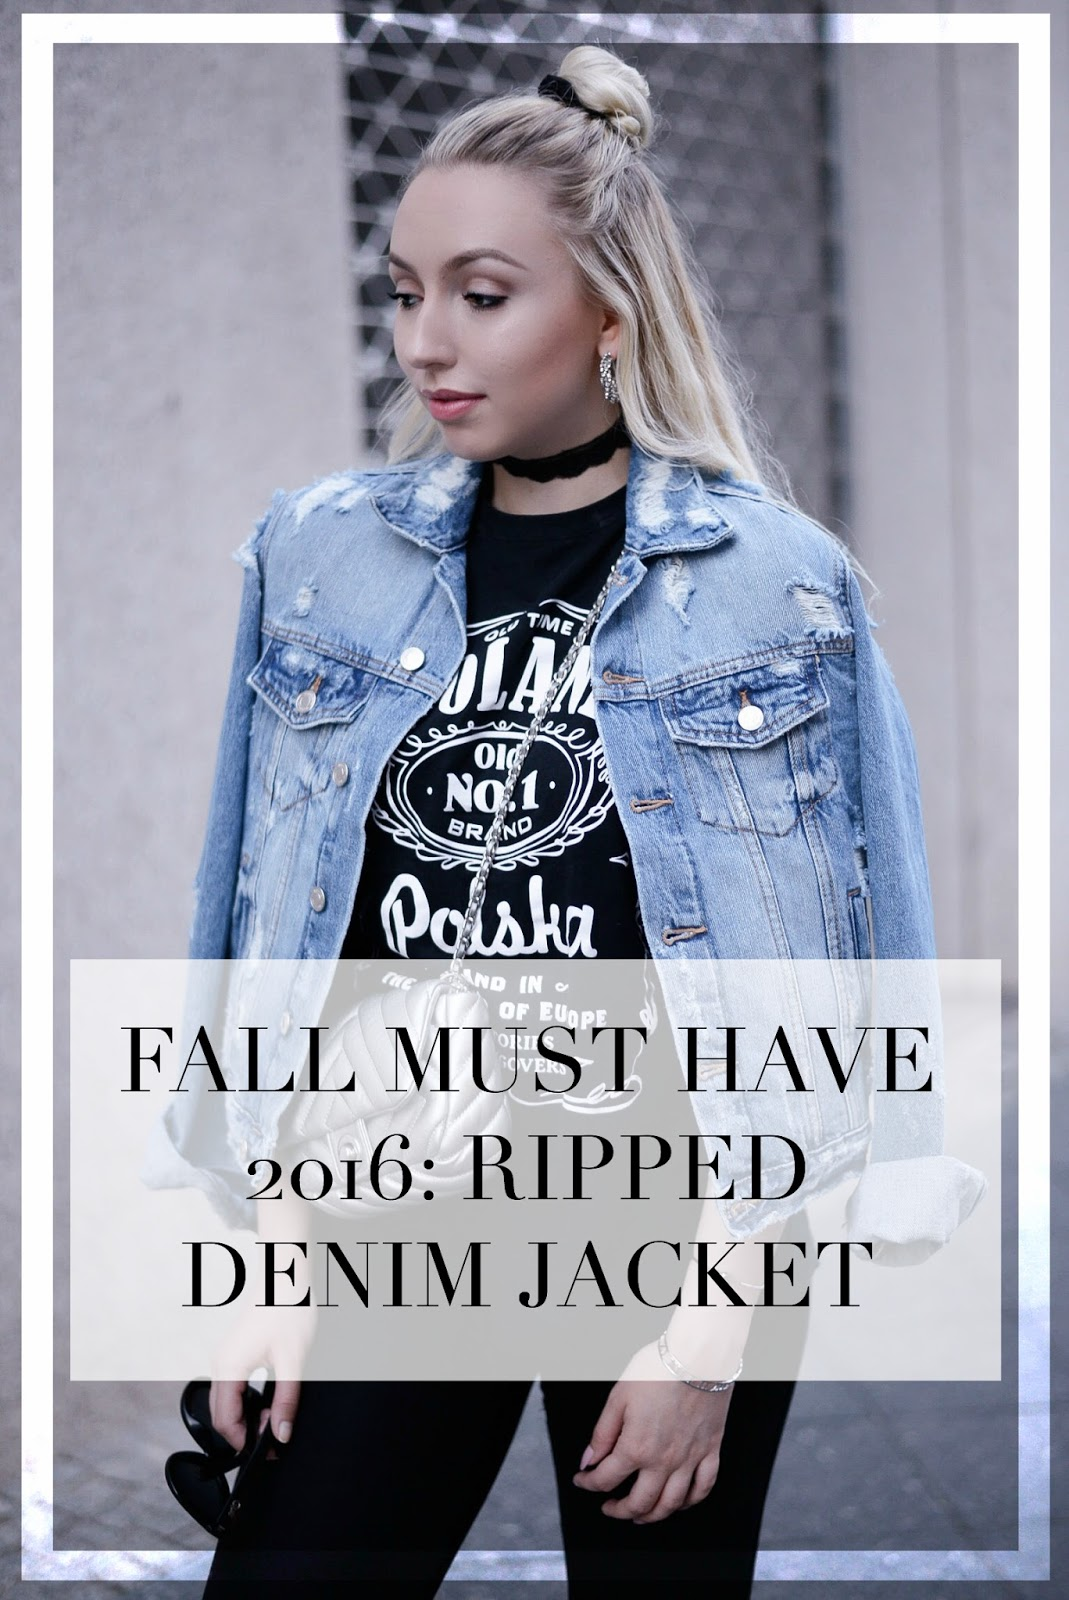 ripped denim jacket for fall